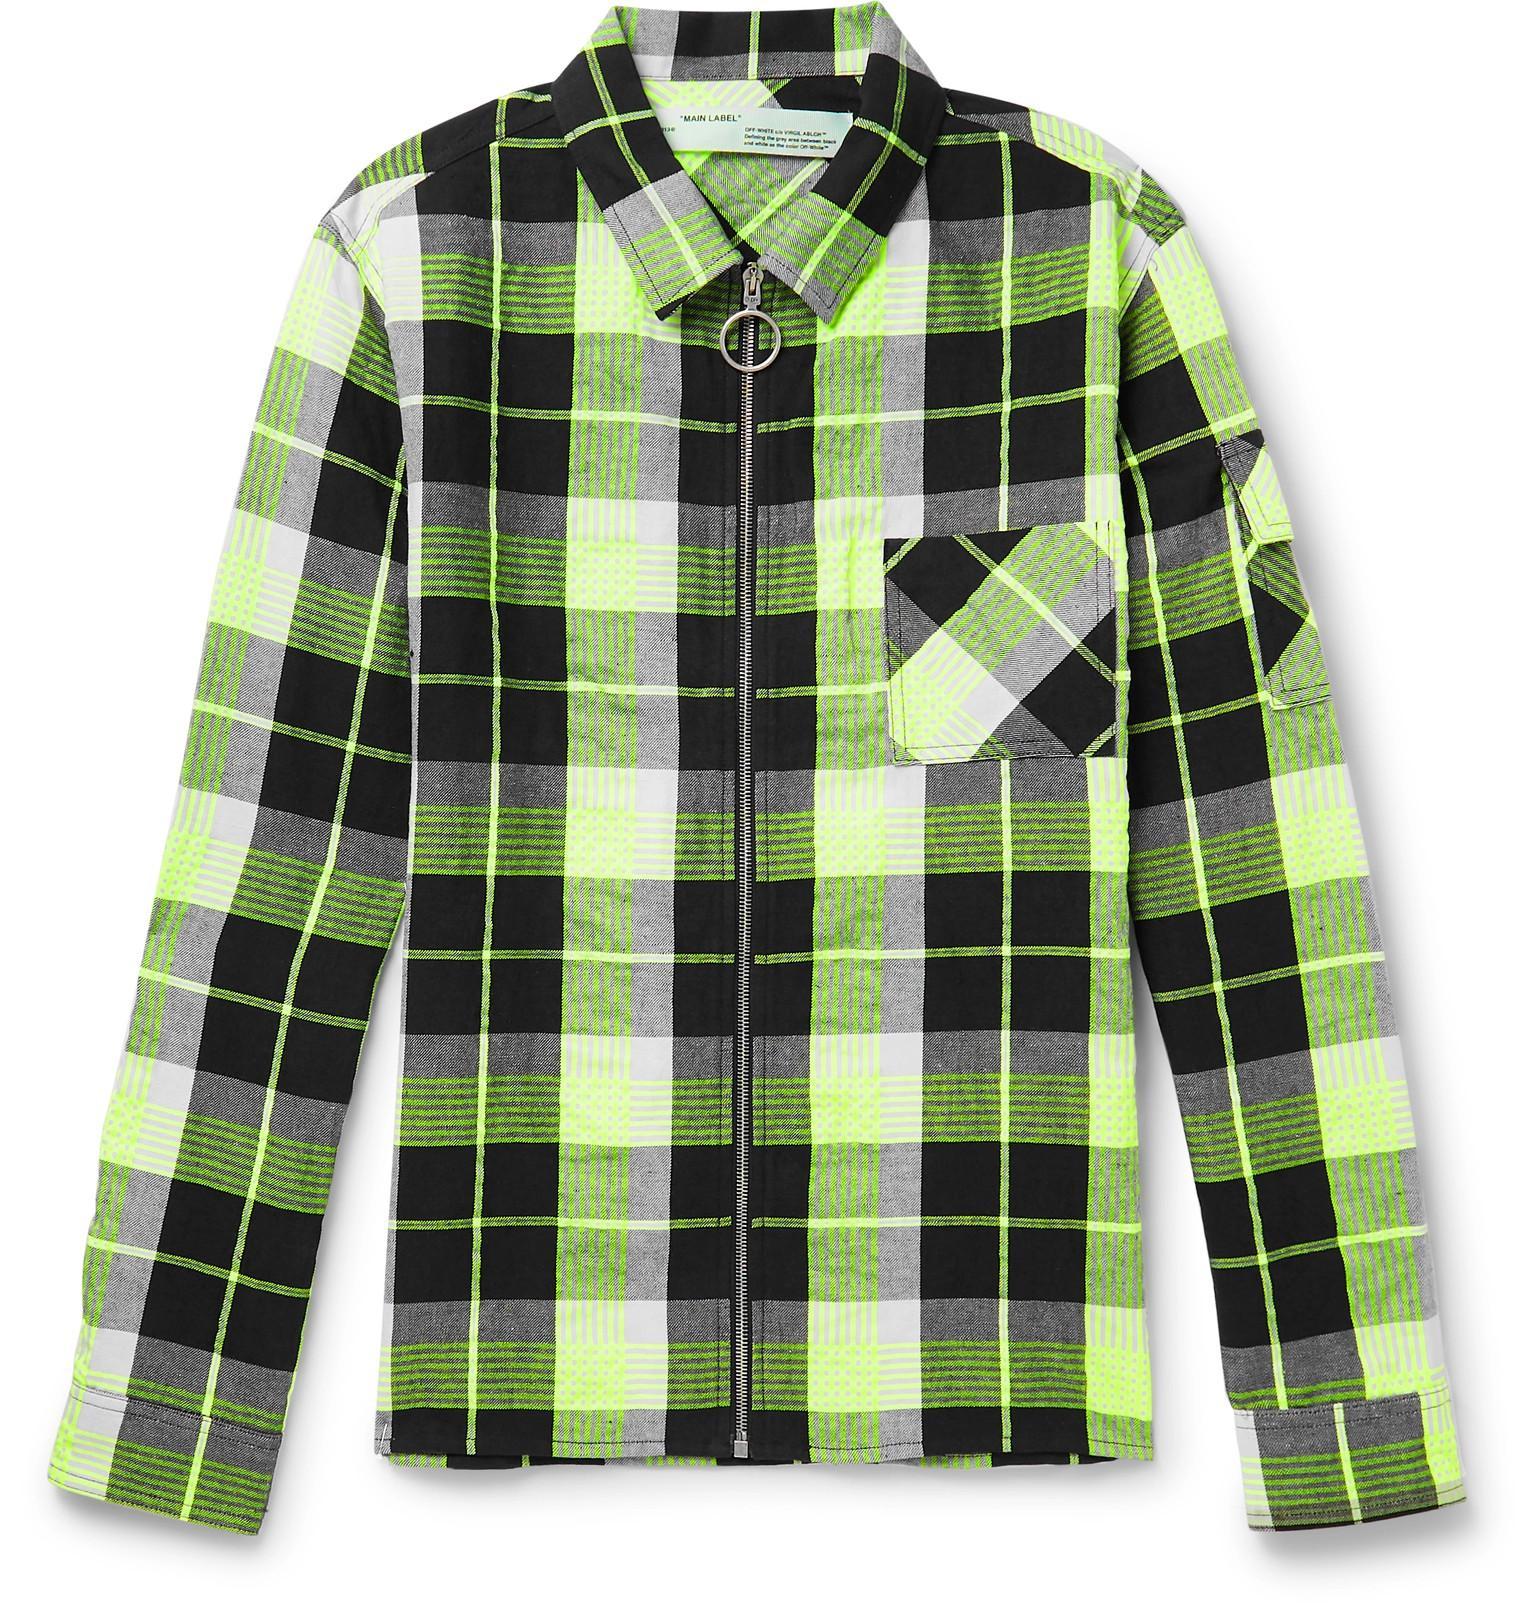 676e9bfce48a Lyst - Off-White c o Virgil Abloh Printed Checked Twill Zip-up Shirt ...